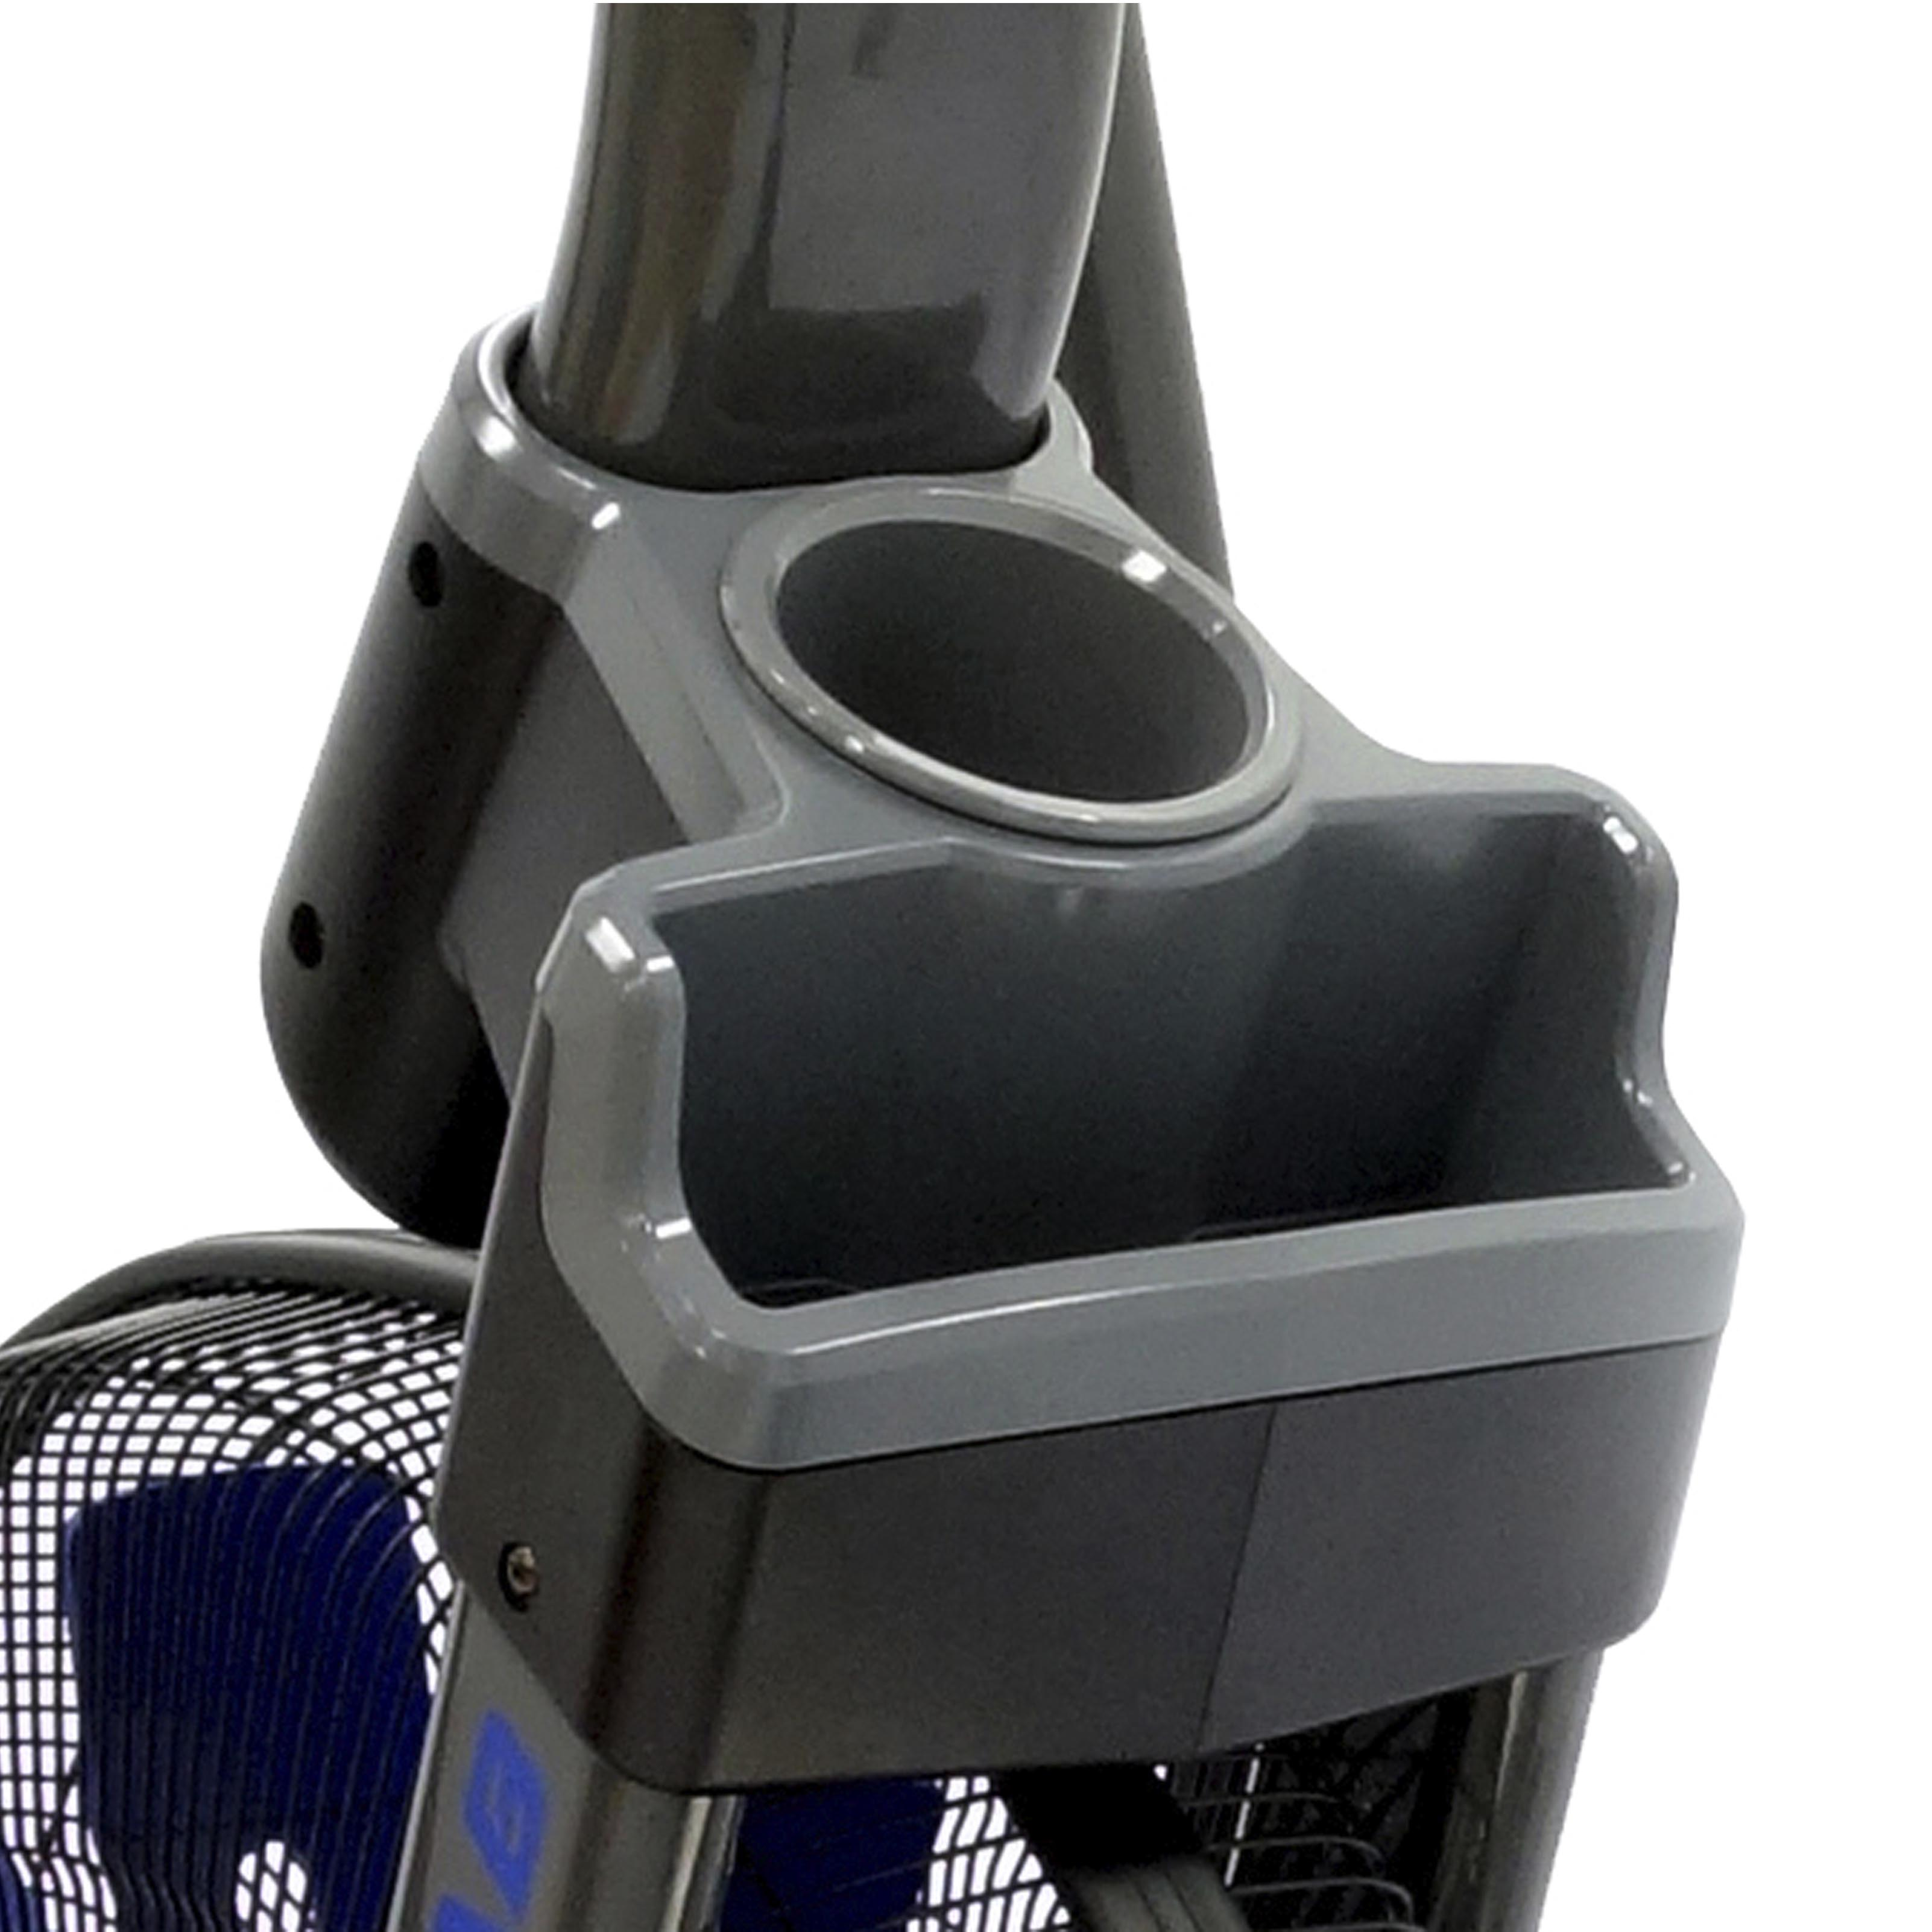 AirTEK Fitness HIIT Air Bike Cup Holder